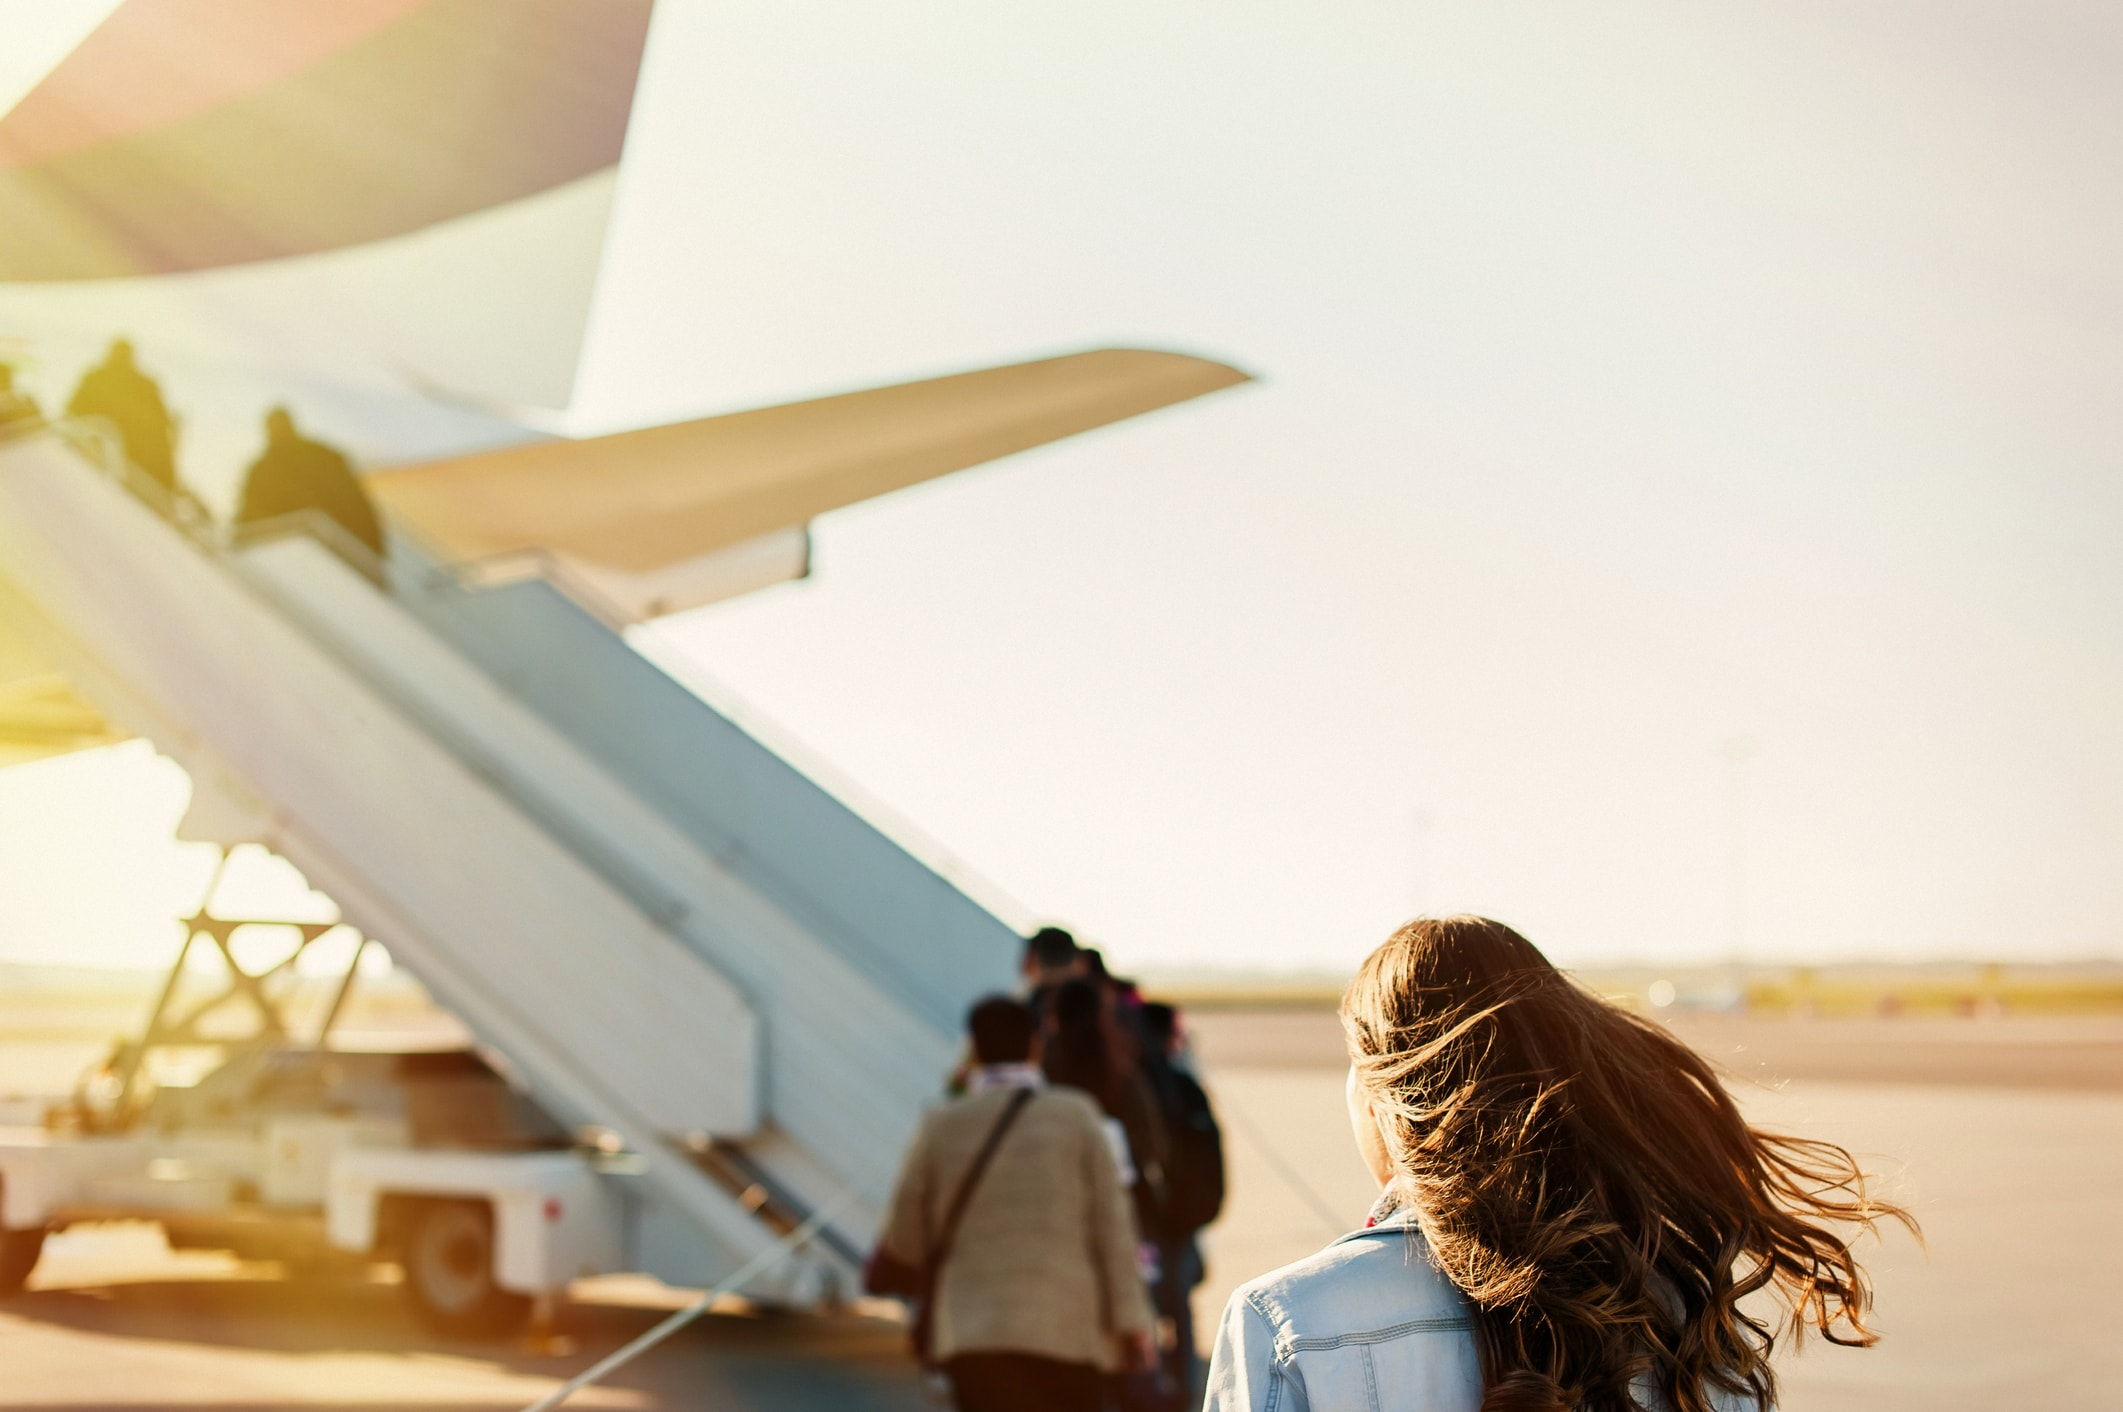 leisure-flight : young woman on tarmac boarding on a plane